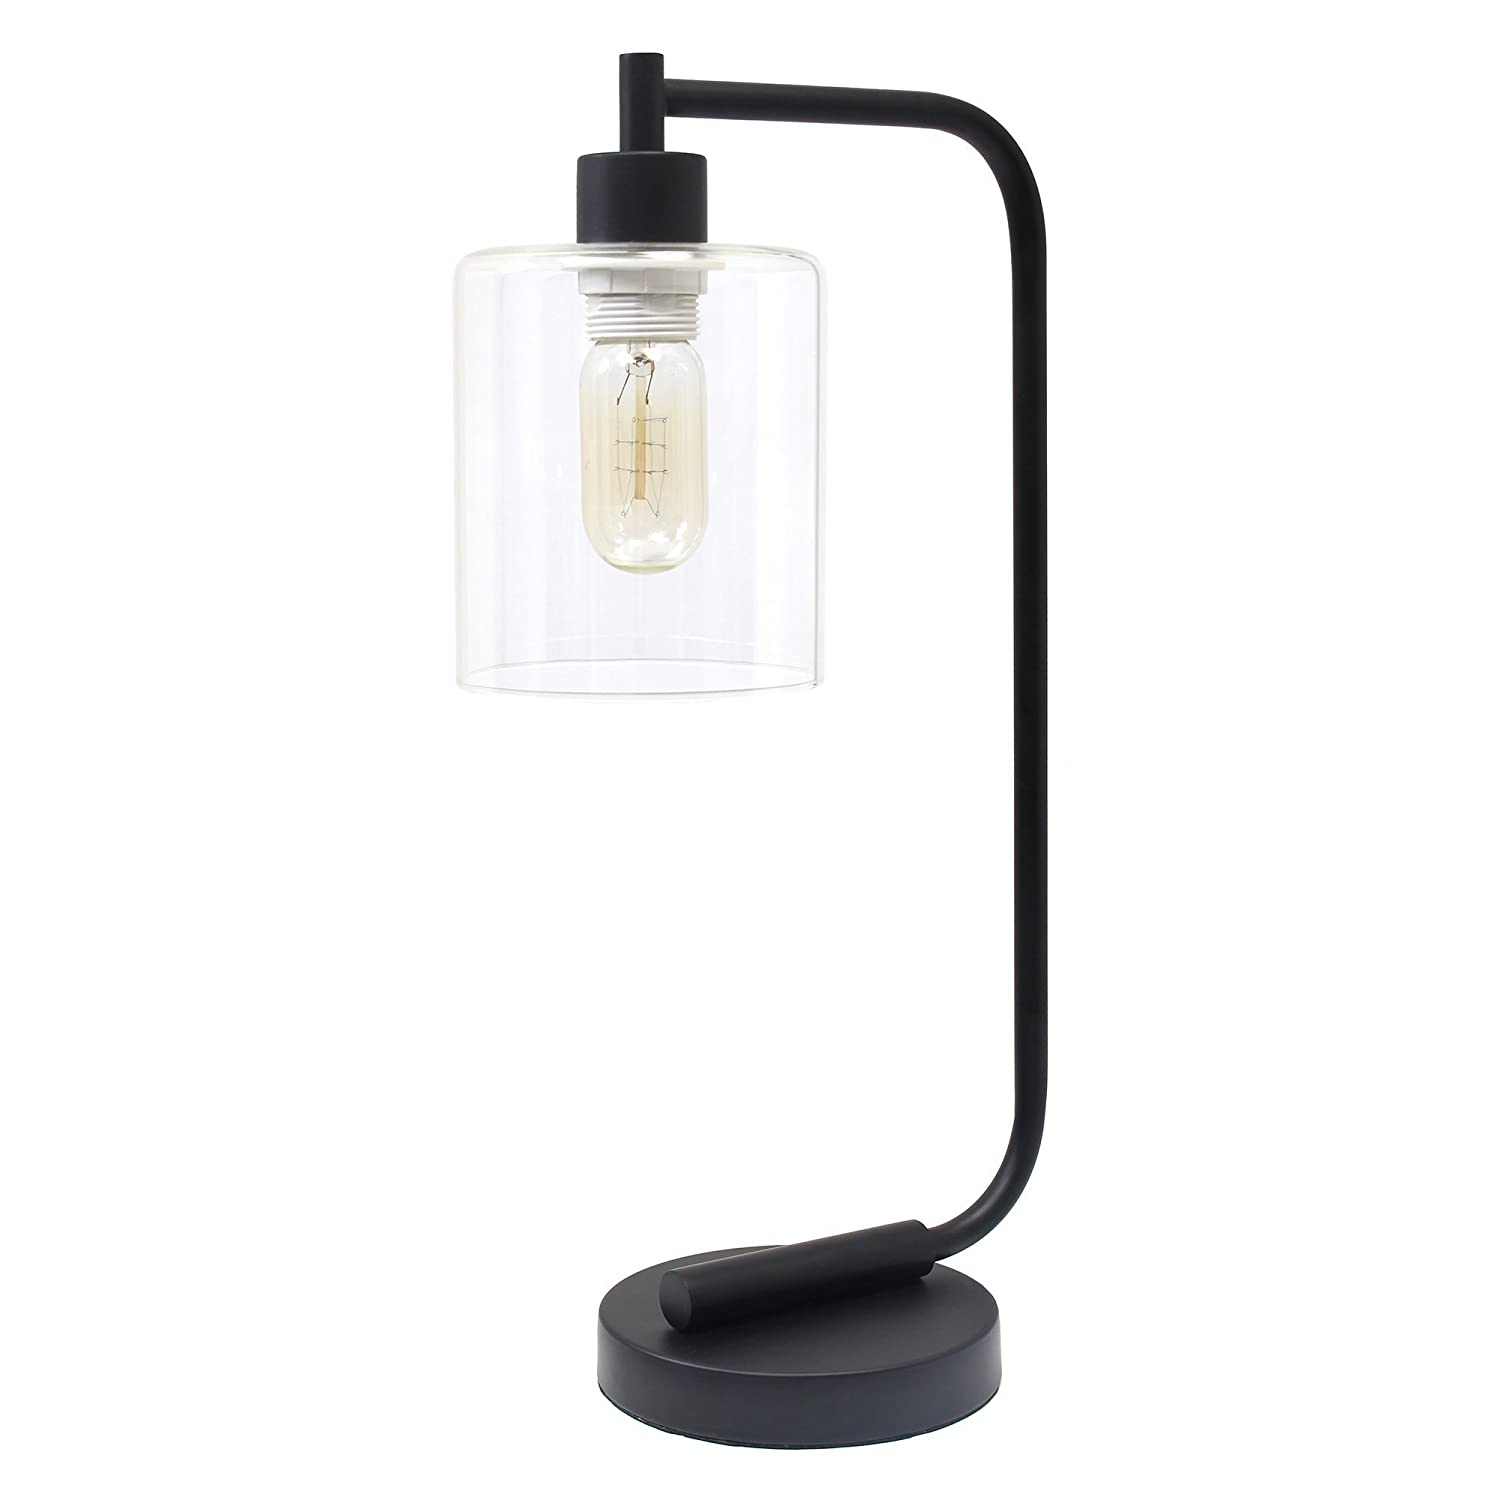 Simple Designs LD1036-BLK Industrial Iron Desk Lantern Lamp 3.5 Black Renewed